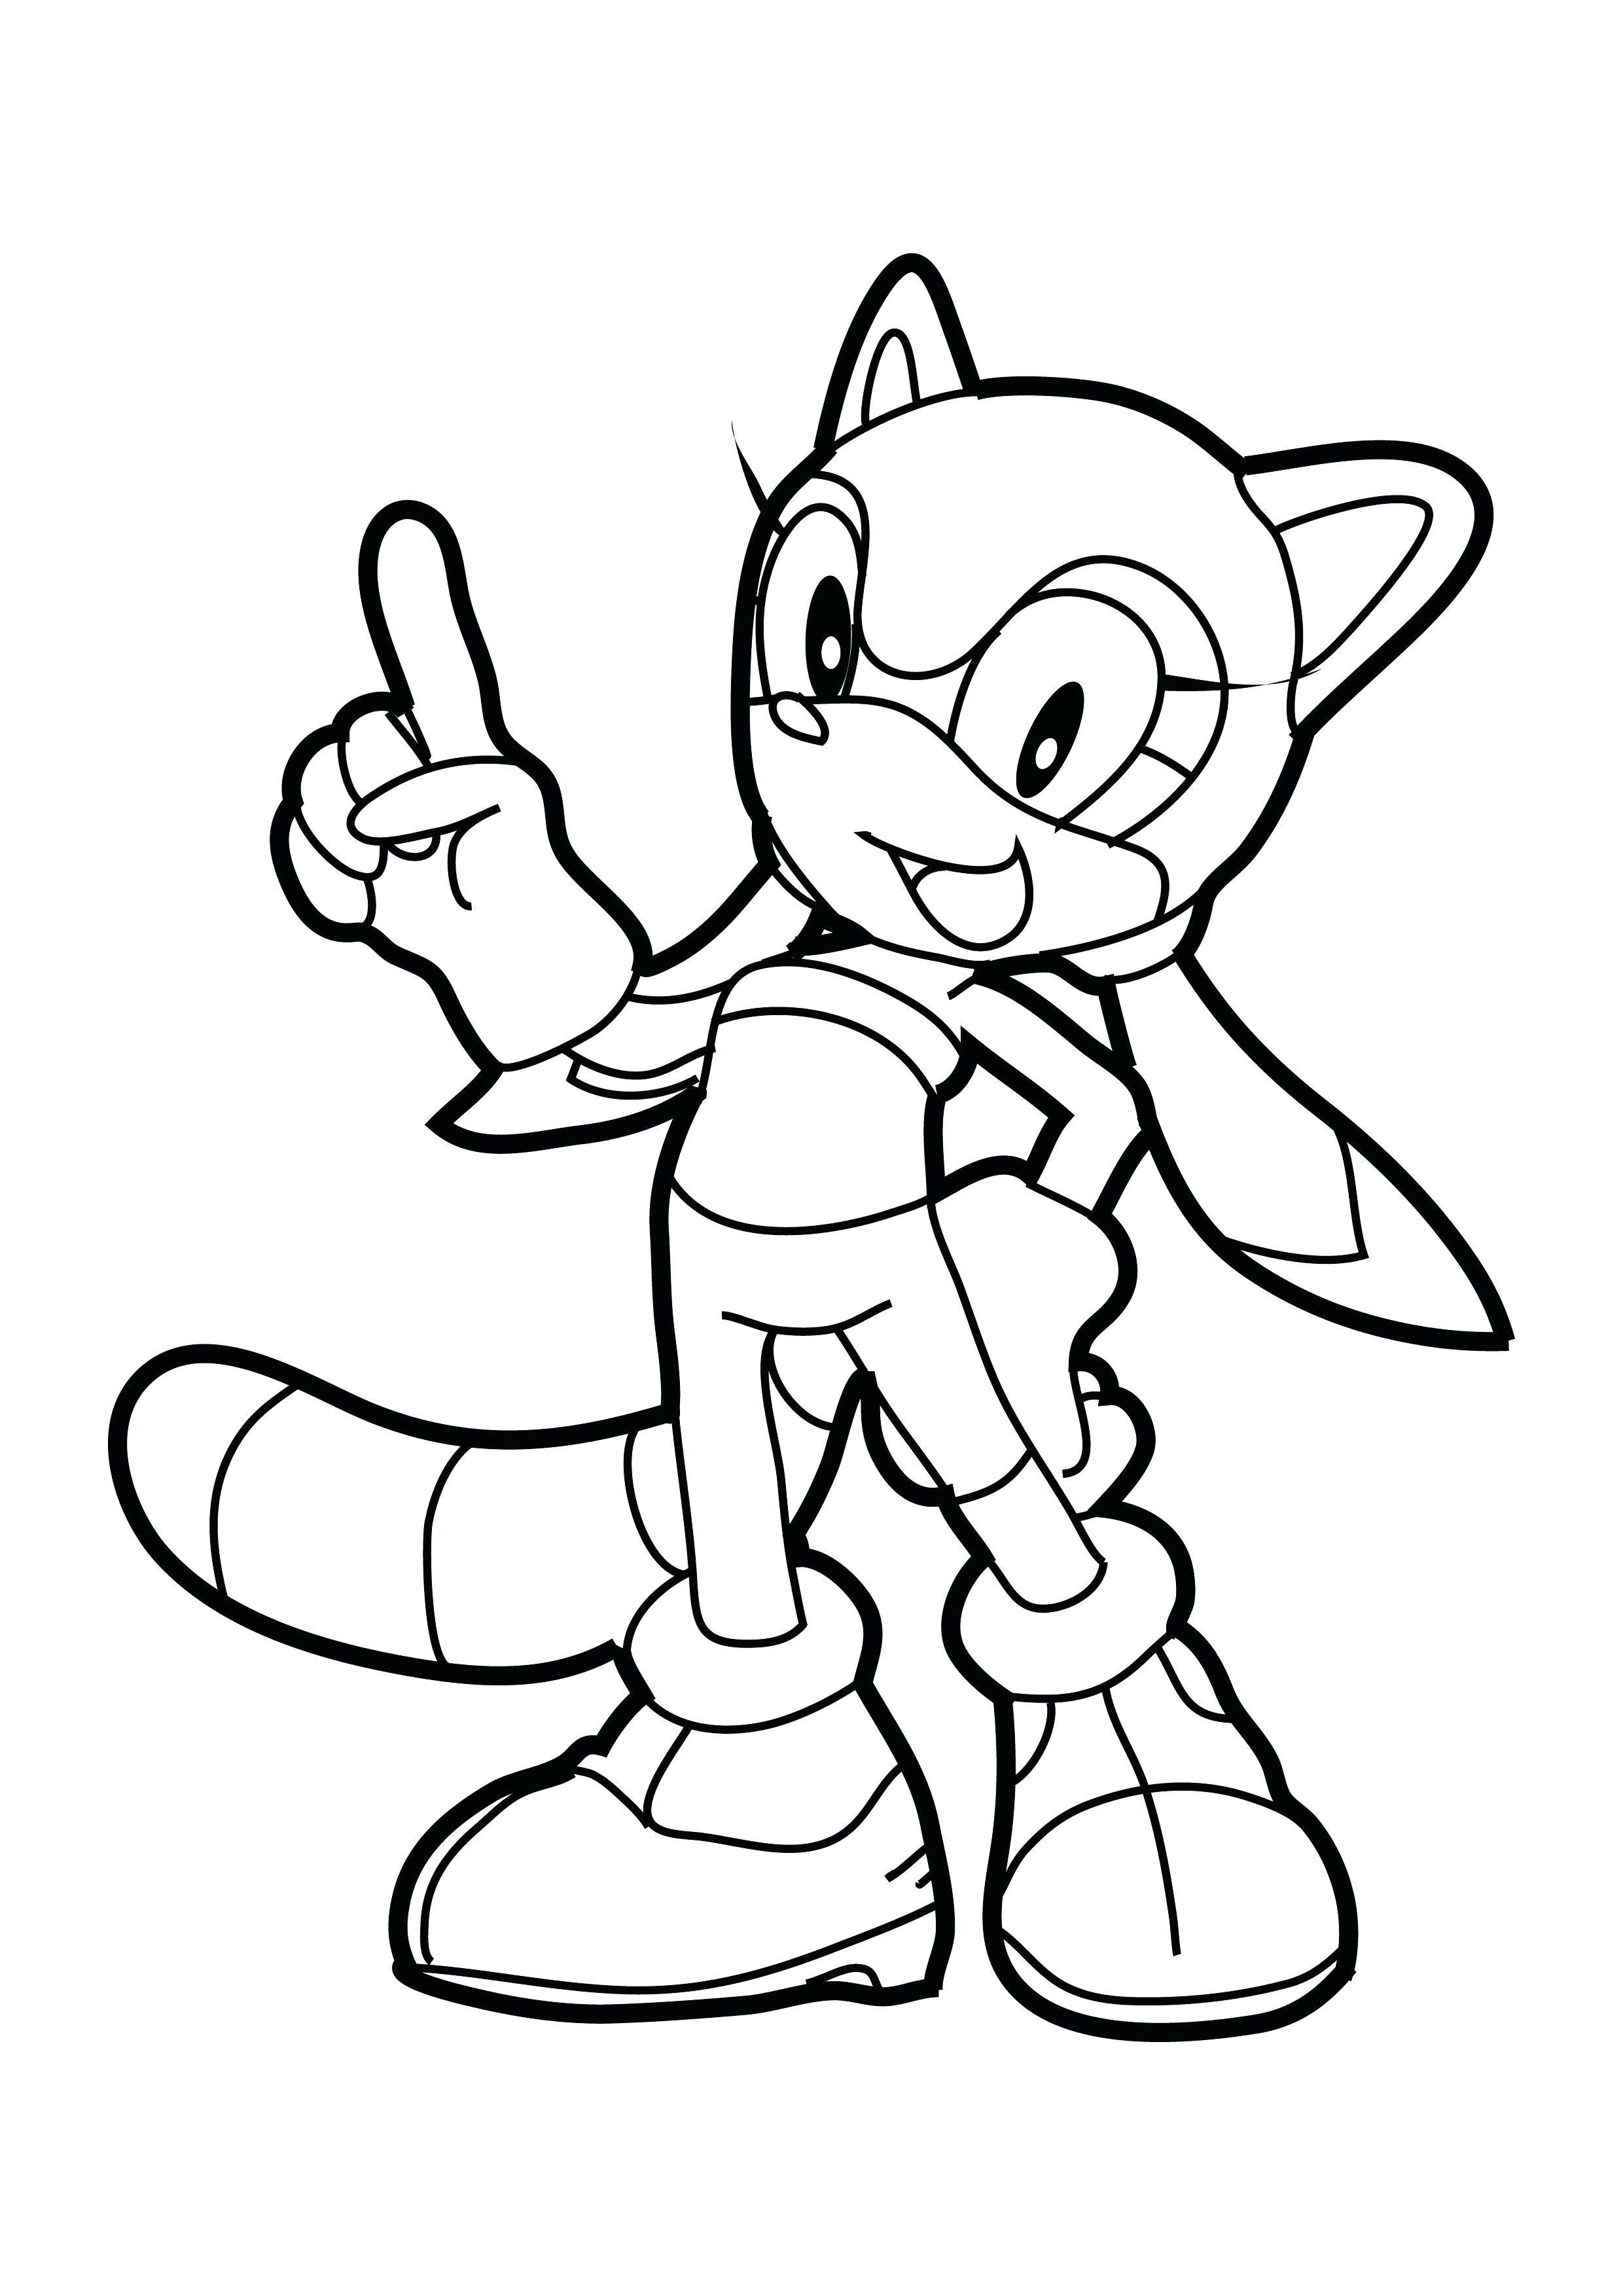 Sonic The Hedgehog Printables Coloring Pages Sonic 02 Cartoons